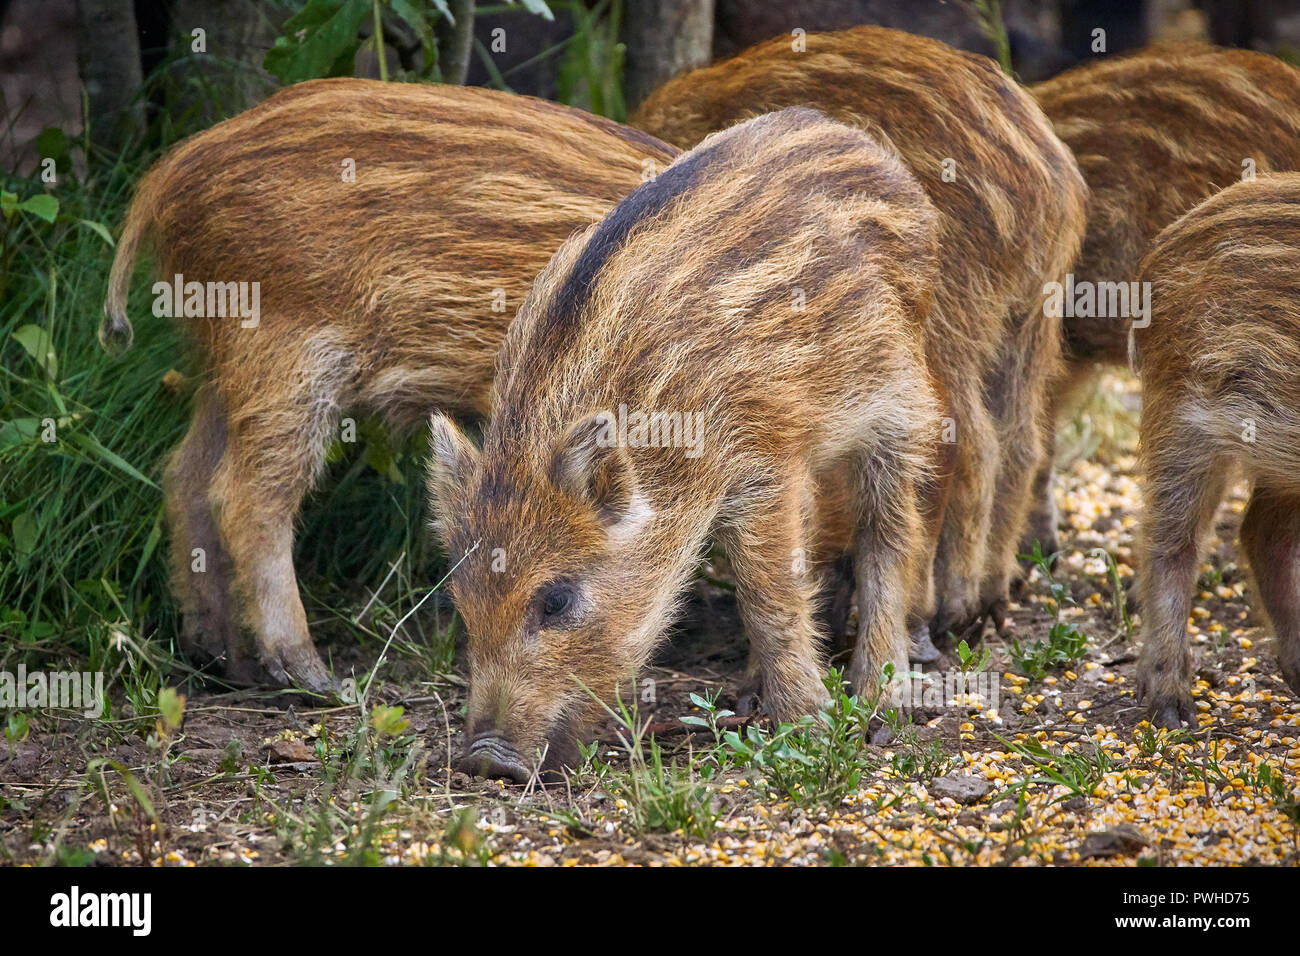 Juvenile wild hogs rooting in the forest - Stock Image